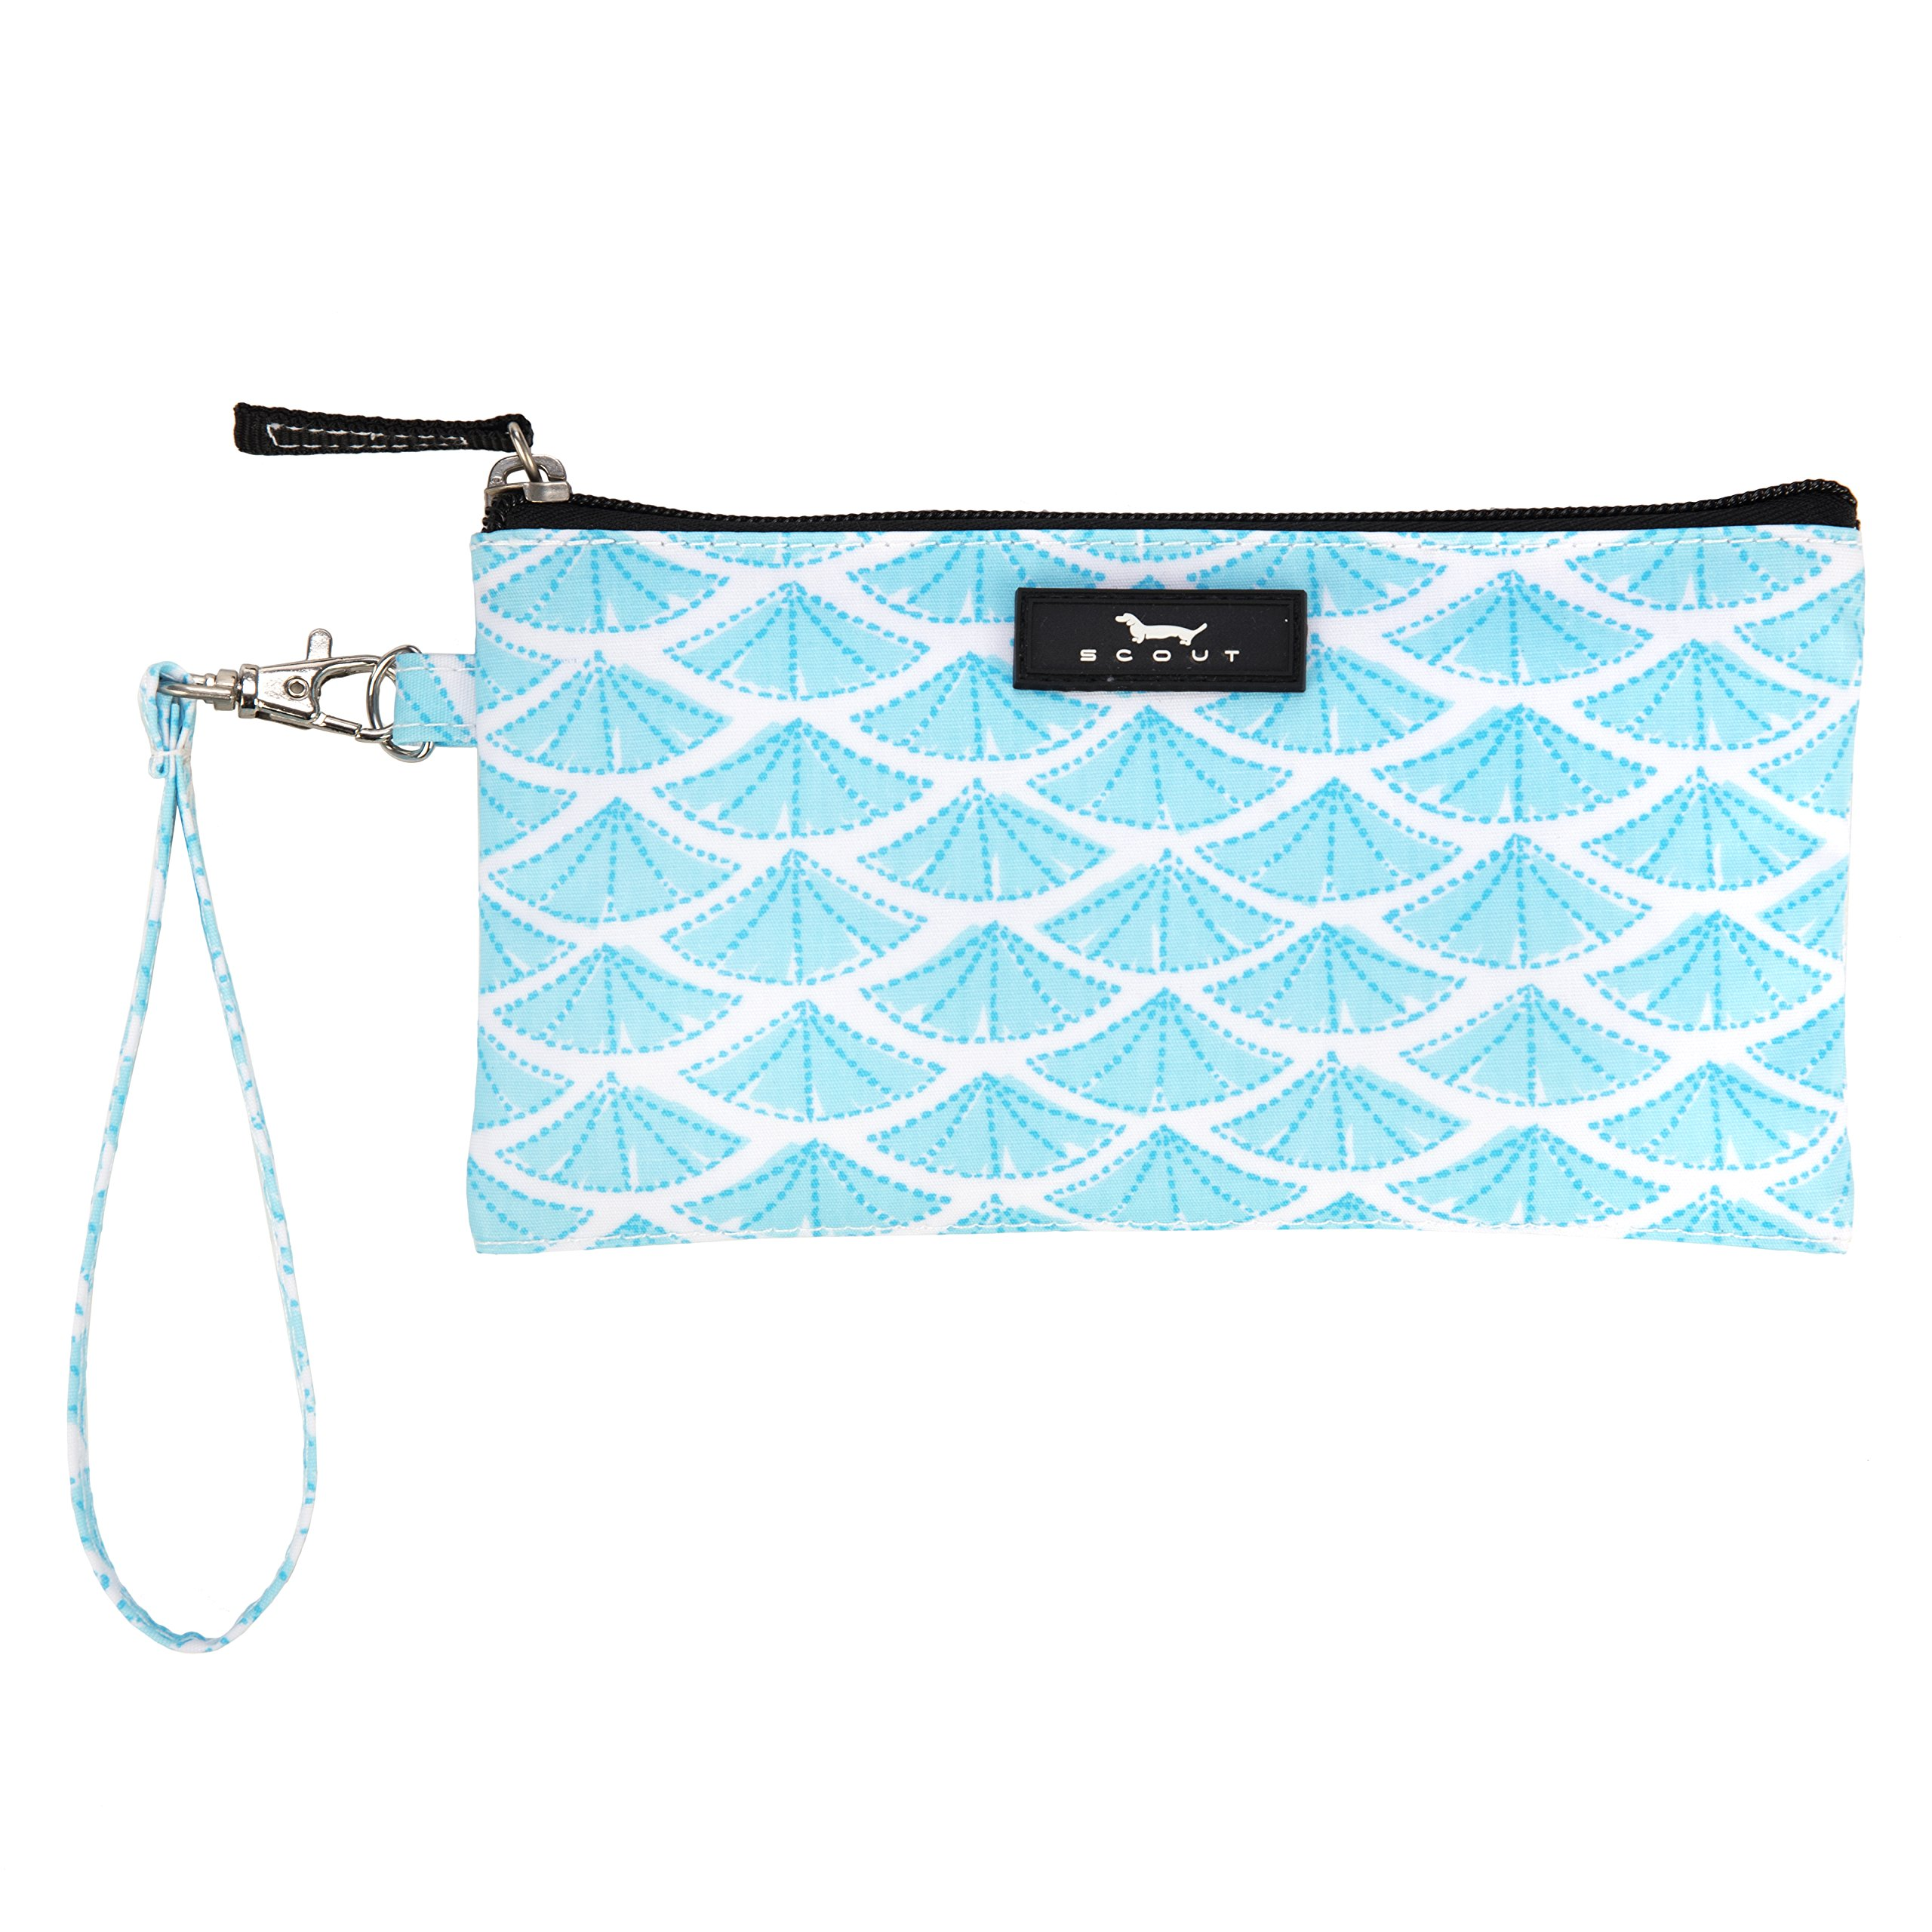 SCOUT Kate Wristlet, Essential Lightweight Clutch, Fits iPhone 6-8, Removable Strap, Water Resistant, Zips Closed, Swimfan